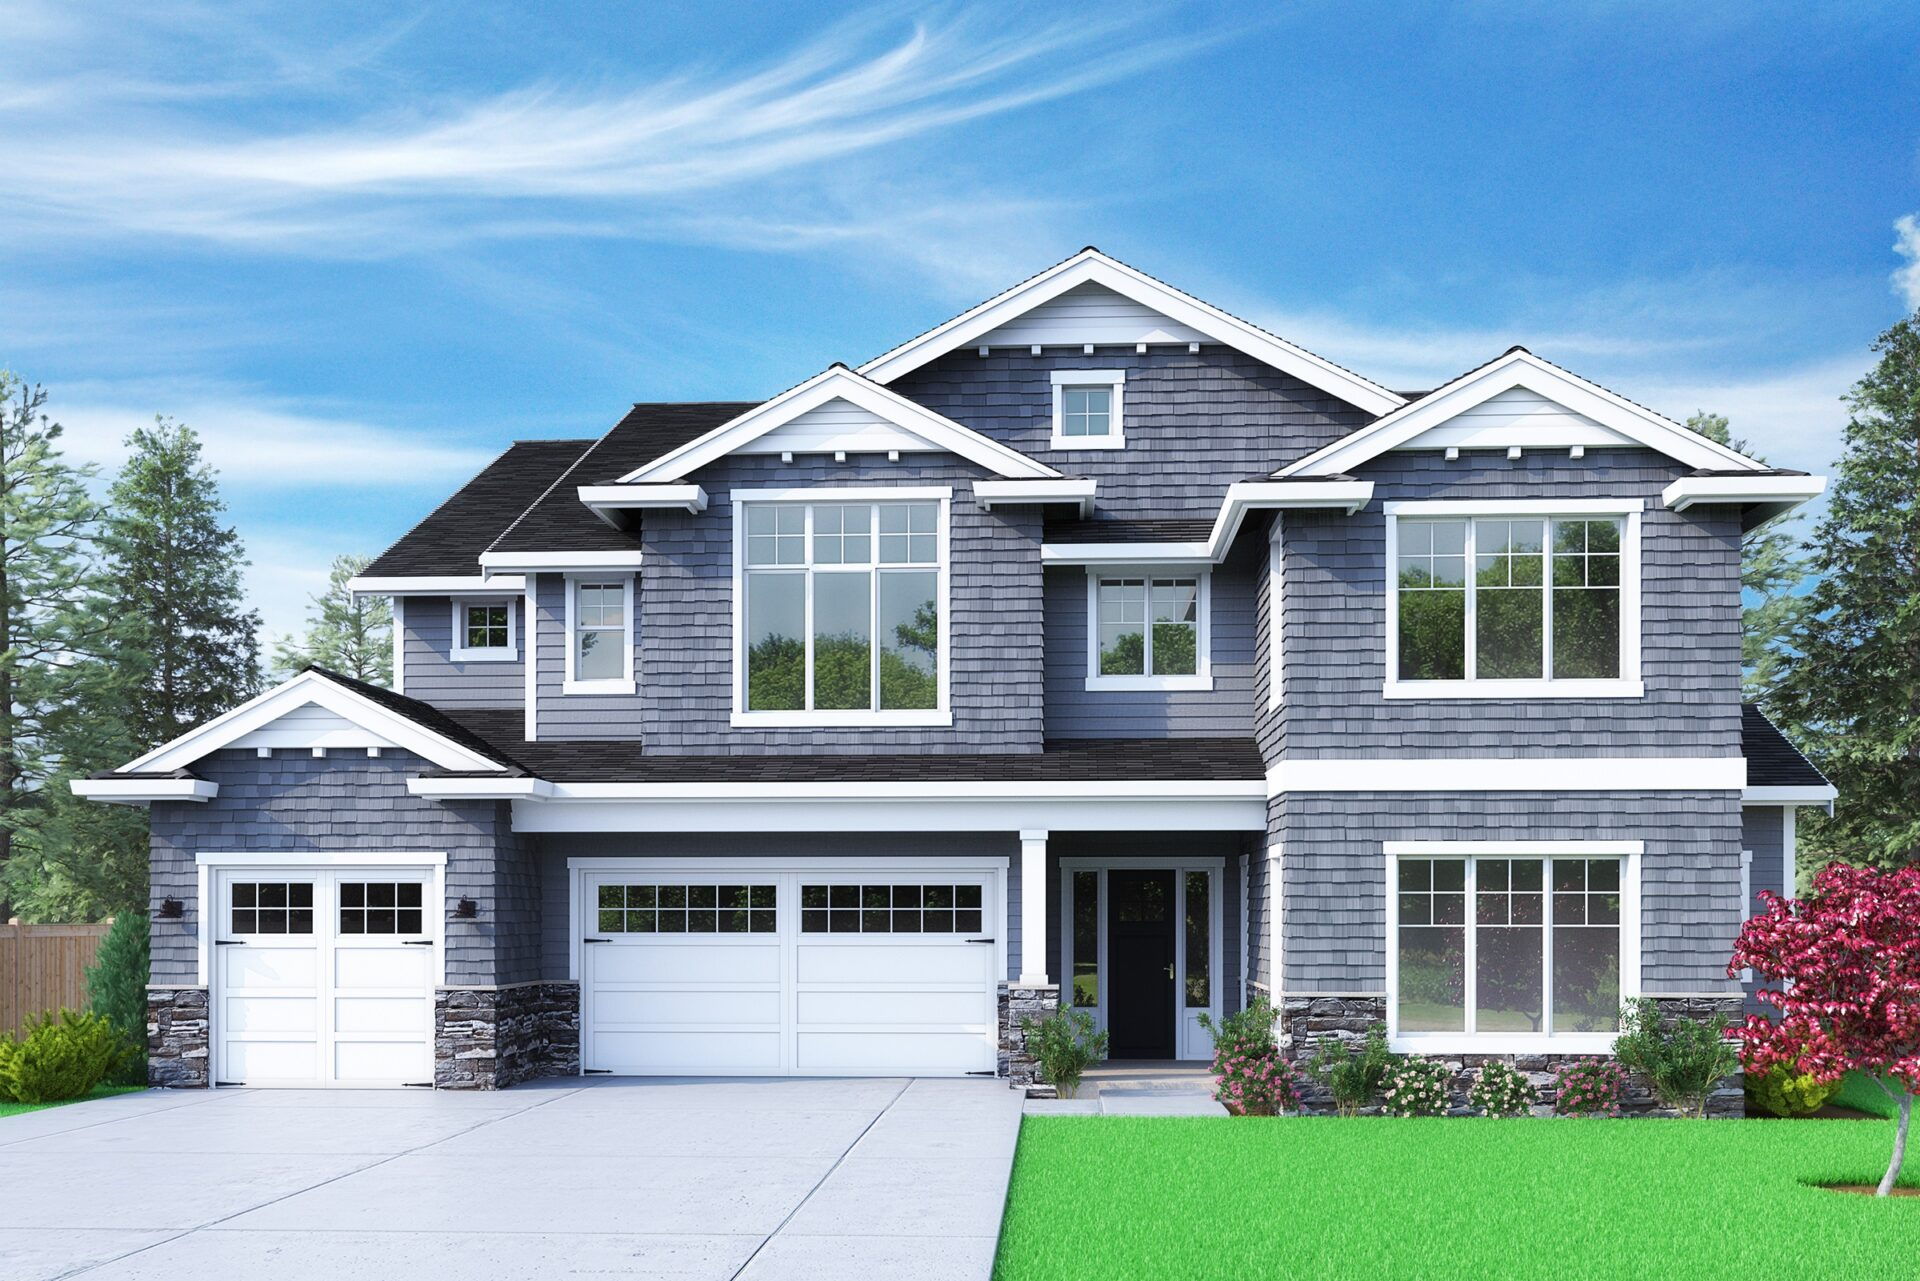 View our new luxury home construction on 1823 153rd Ave SE, in Bellevue, WA from MN Custom Homes